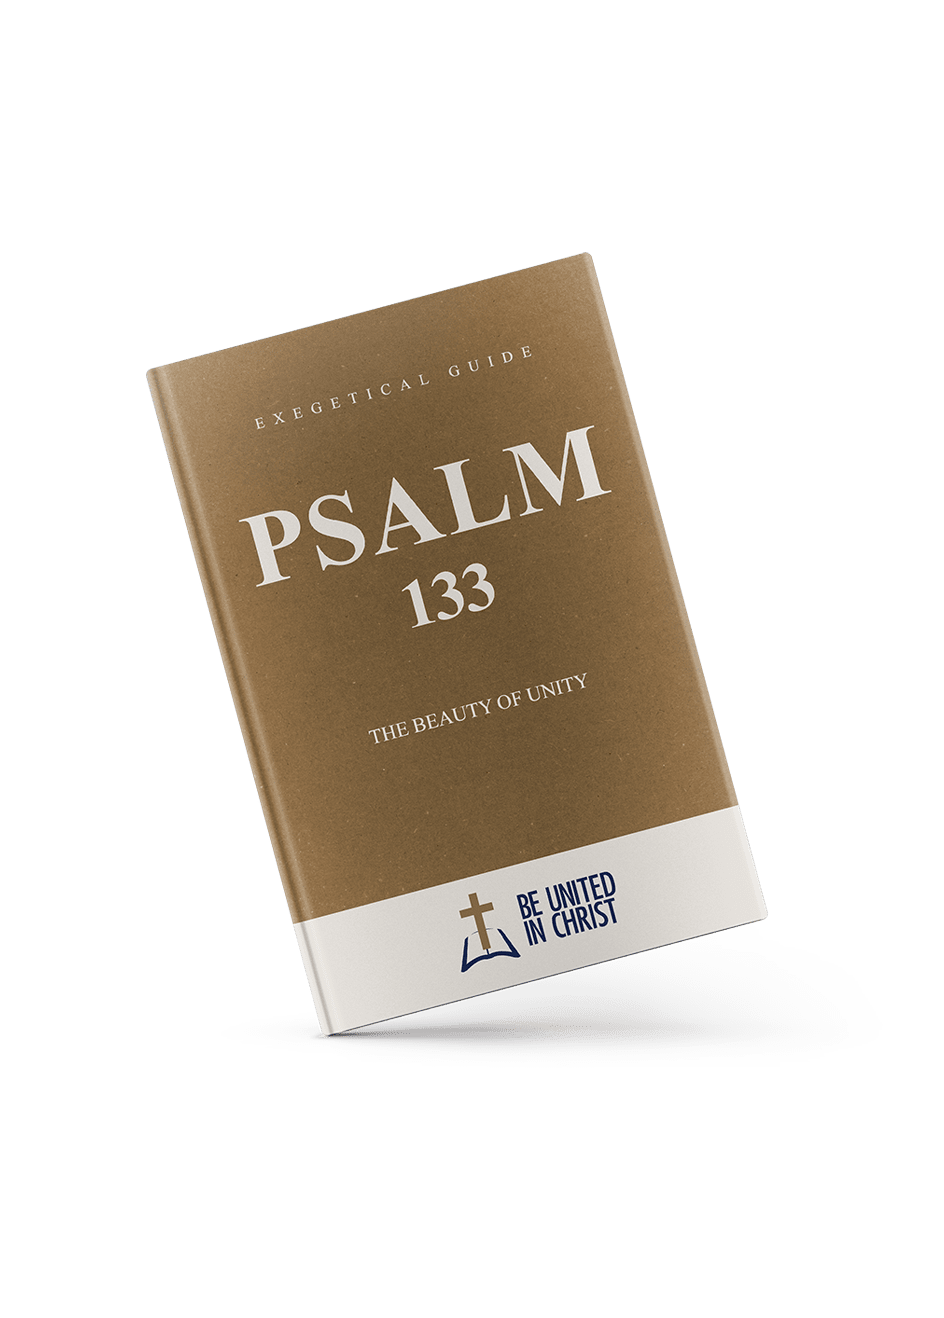 Psalm 133 Book Cover angle view